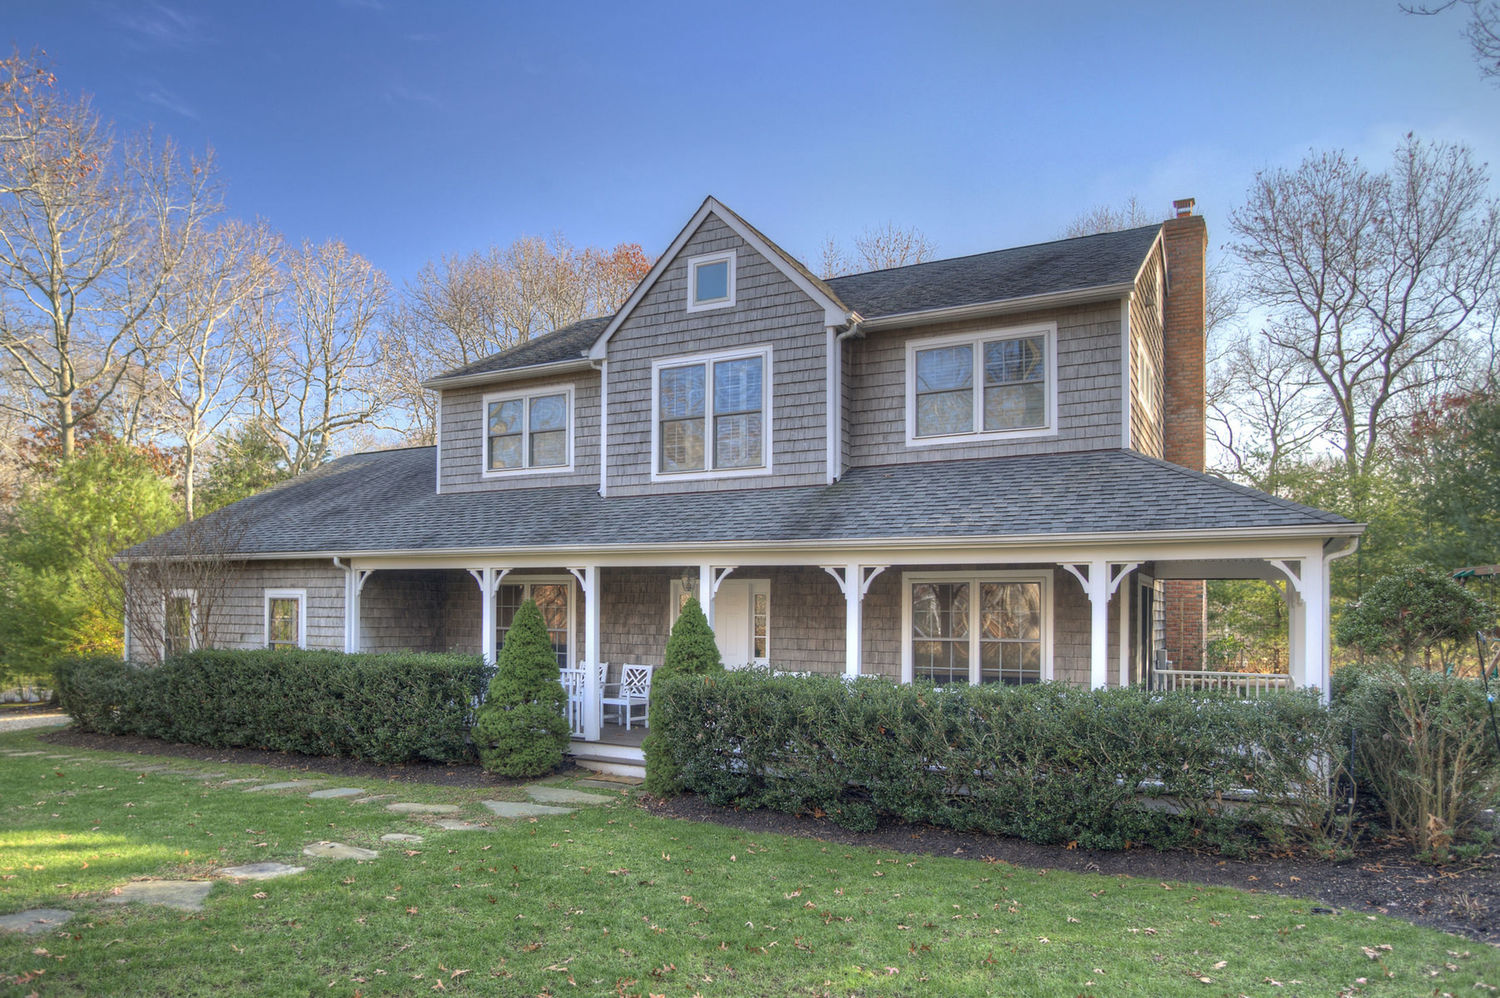 14 Birchwood Lane Bridgehampton, NY 11932